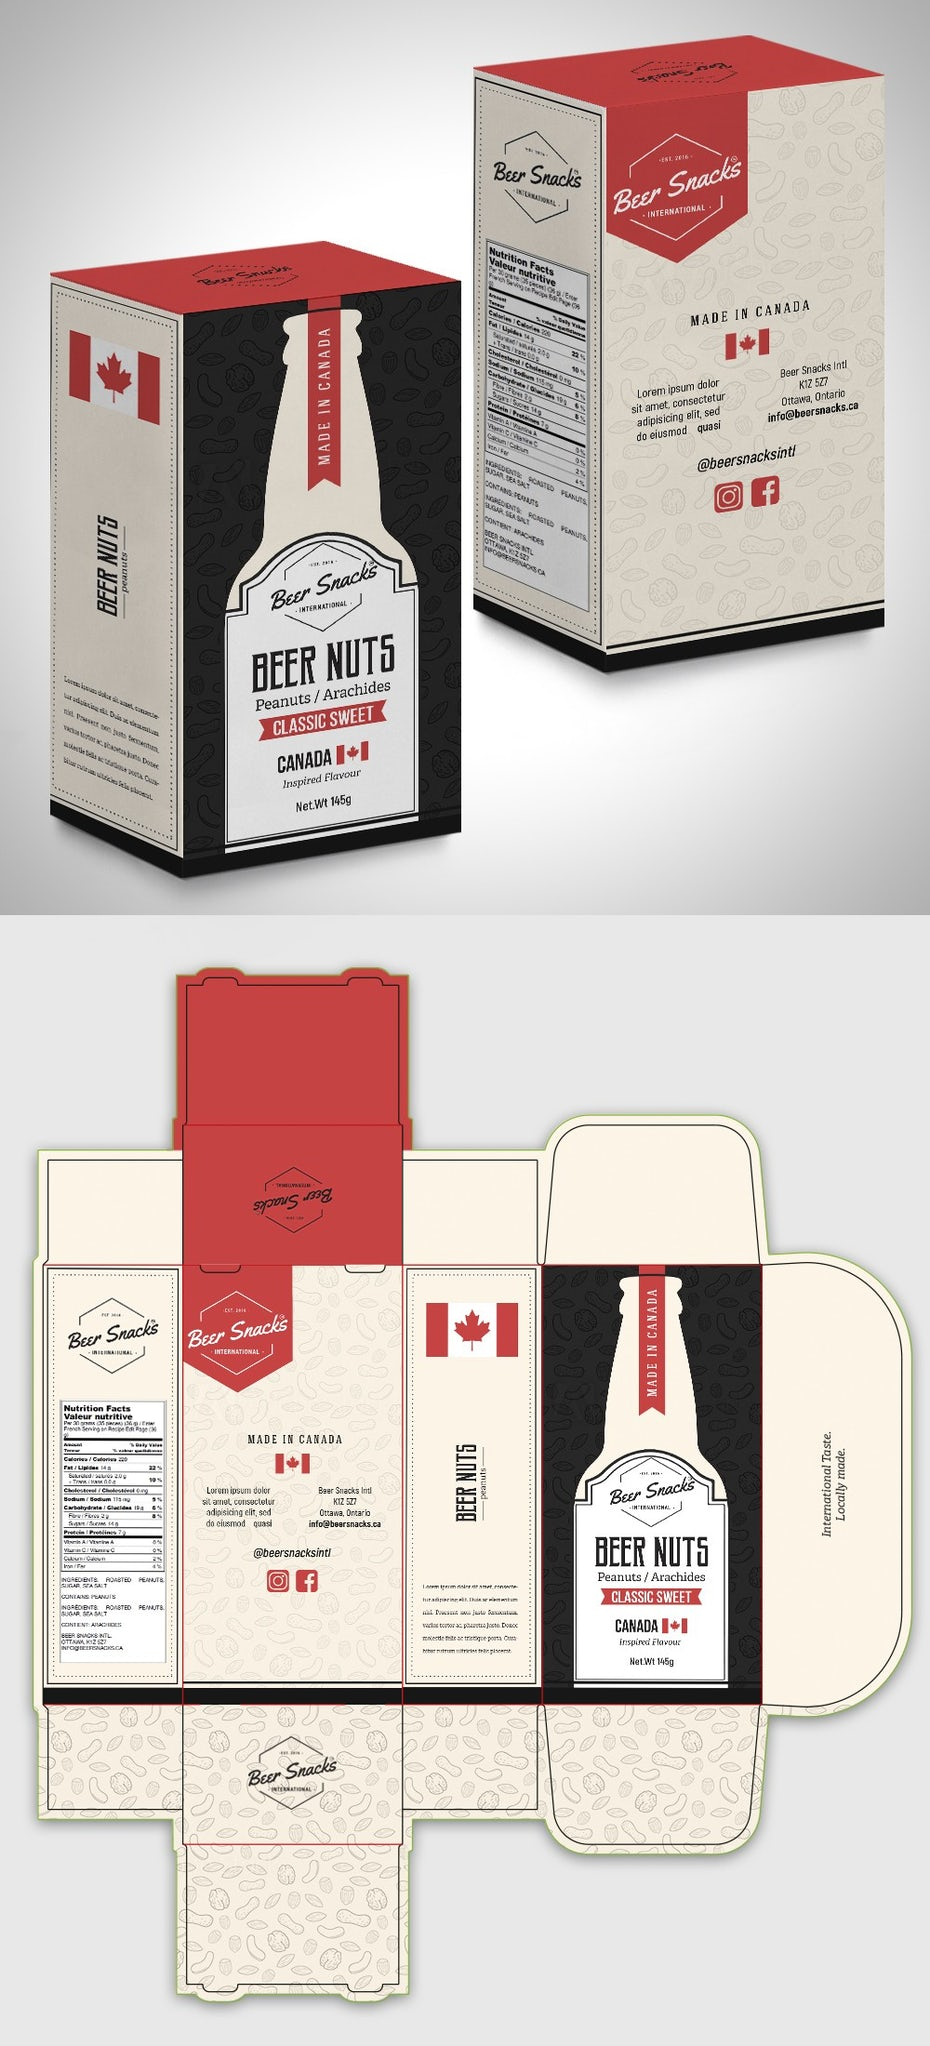 Packaging box design for a beer snacks brand